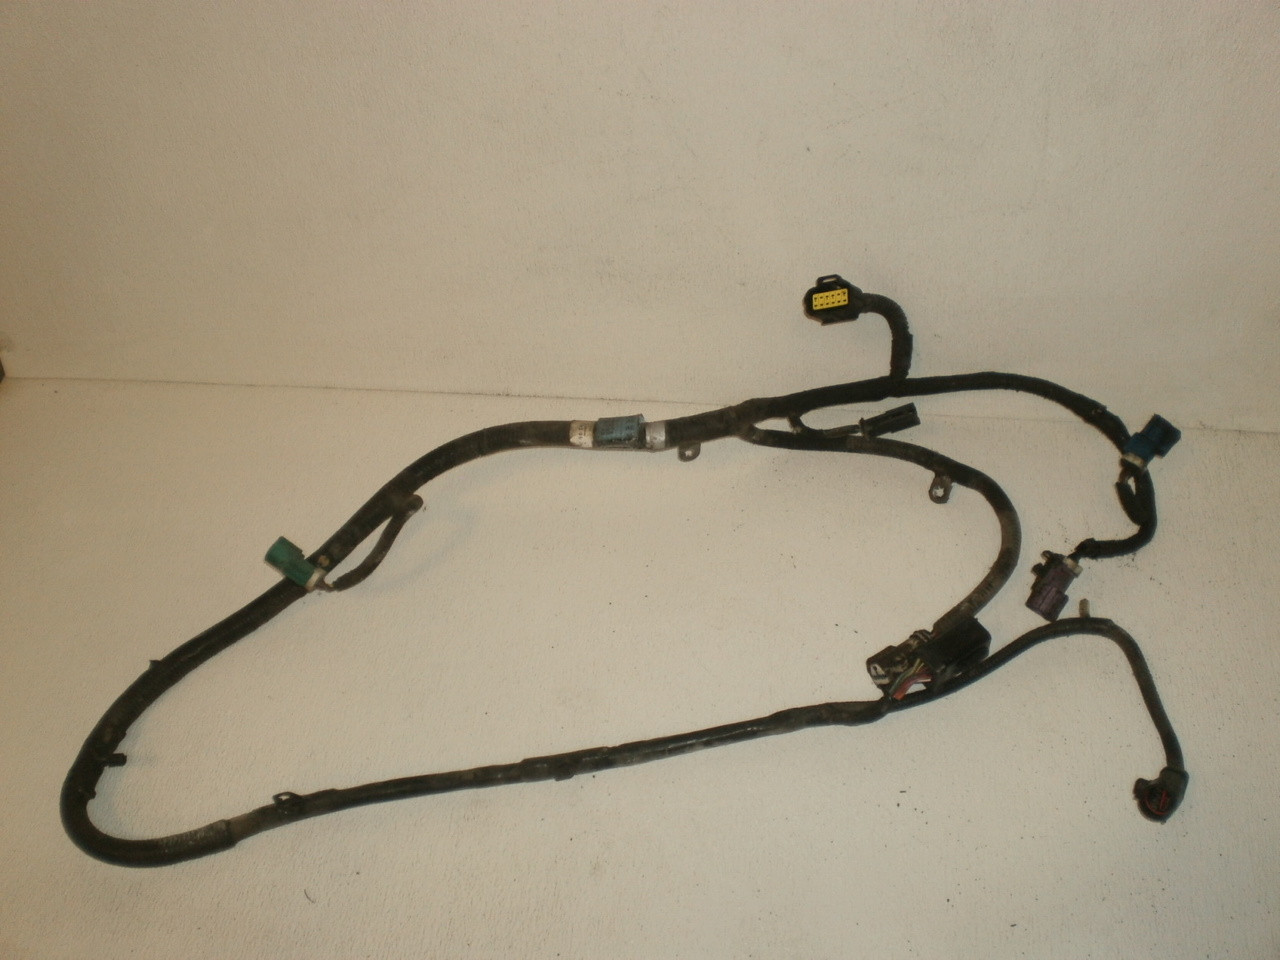 Wiring Harness For 00 Mustang V6 Automatic Electrical Diagram 2000 Pontiac Grand Prix Engine Water Pump On A 3 8 Motor 1994 1998 Ford Coolant Heater Bypass Pipe 1999